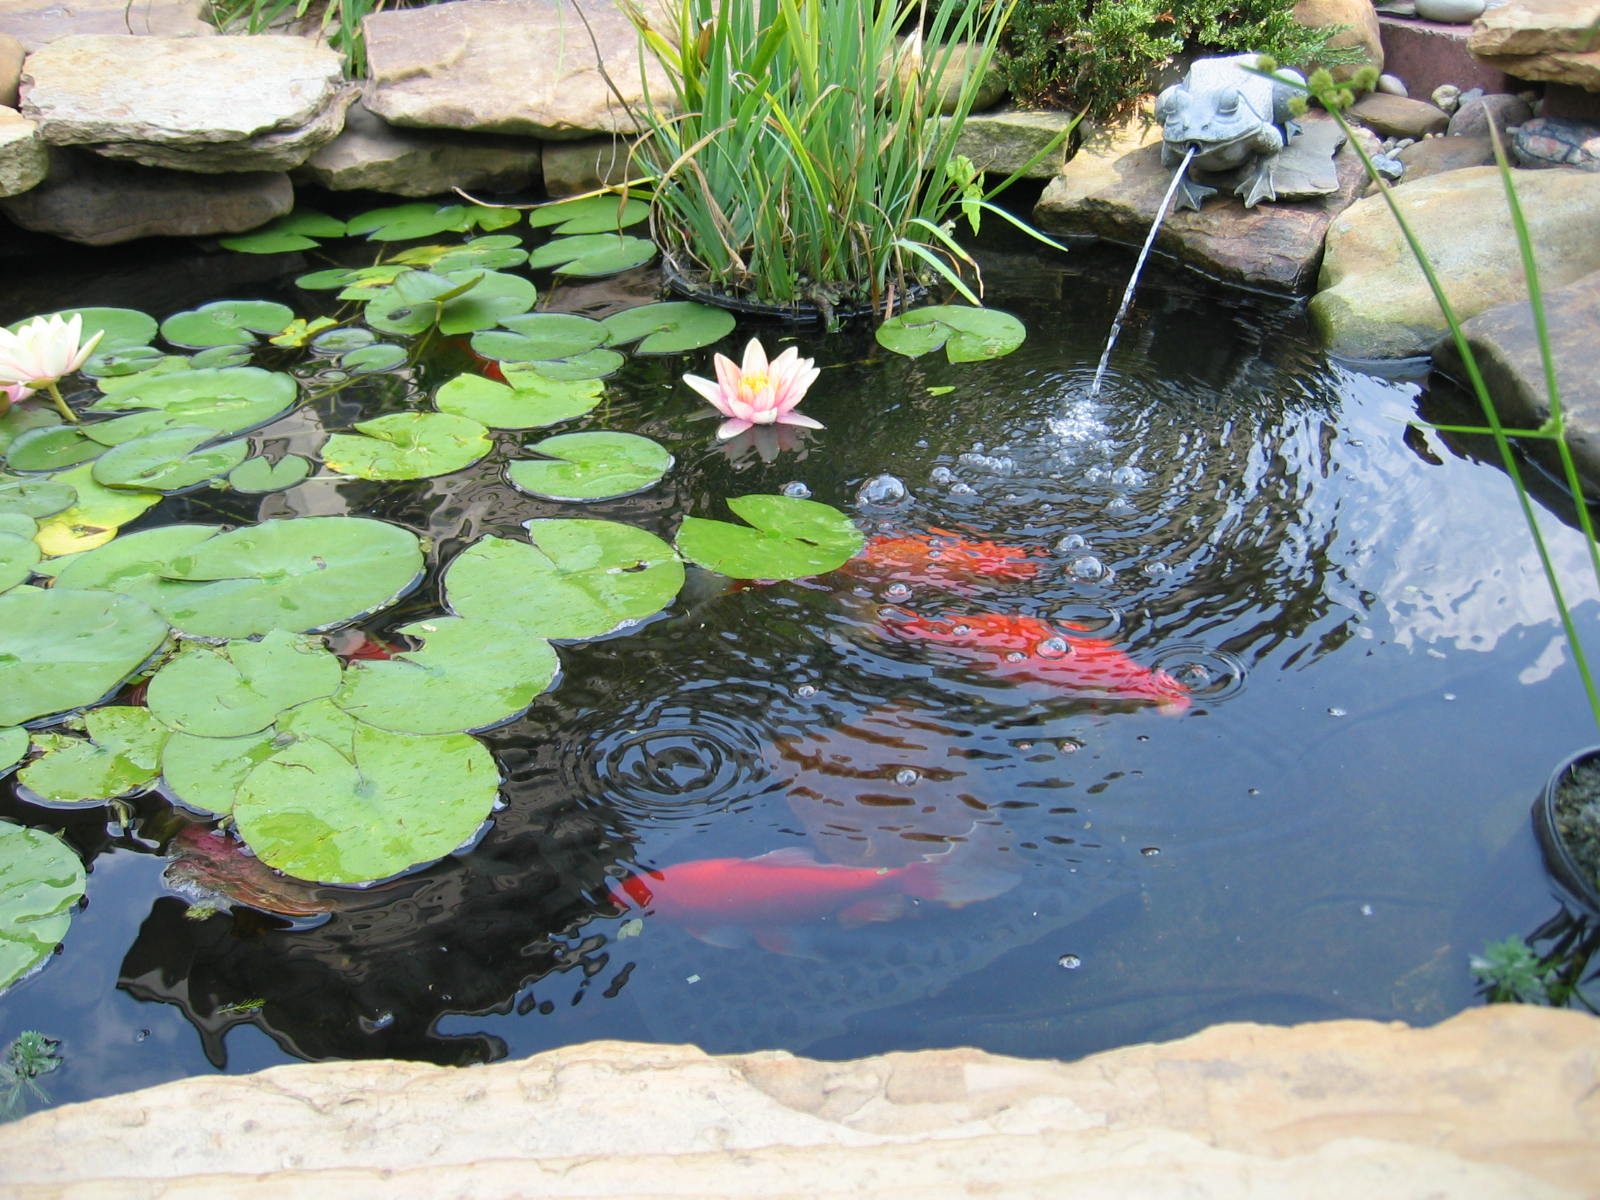 Backyard water feature window ac stove basement for Koi pond fish